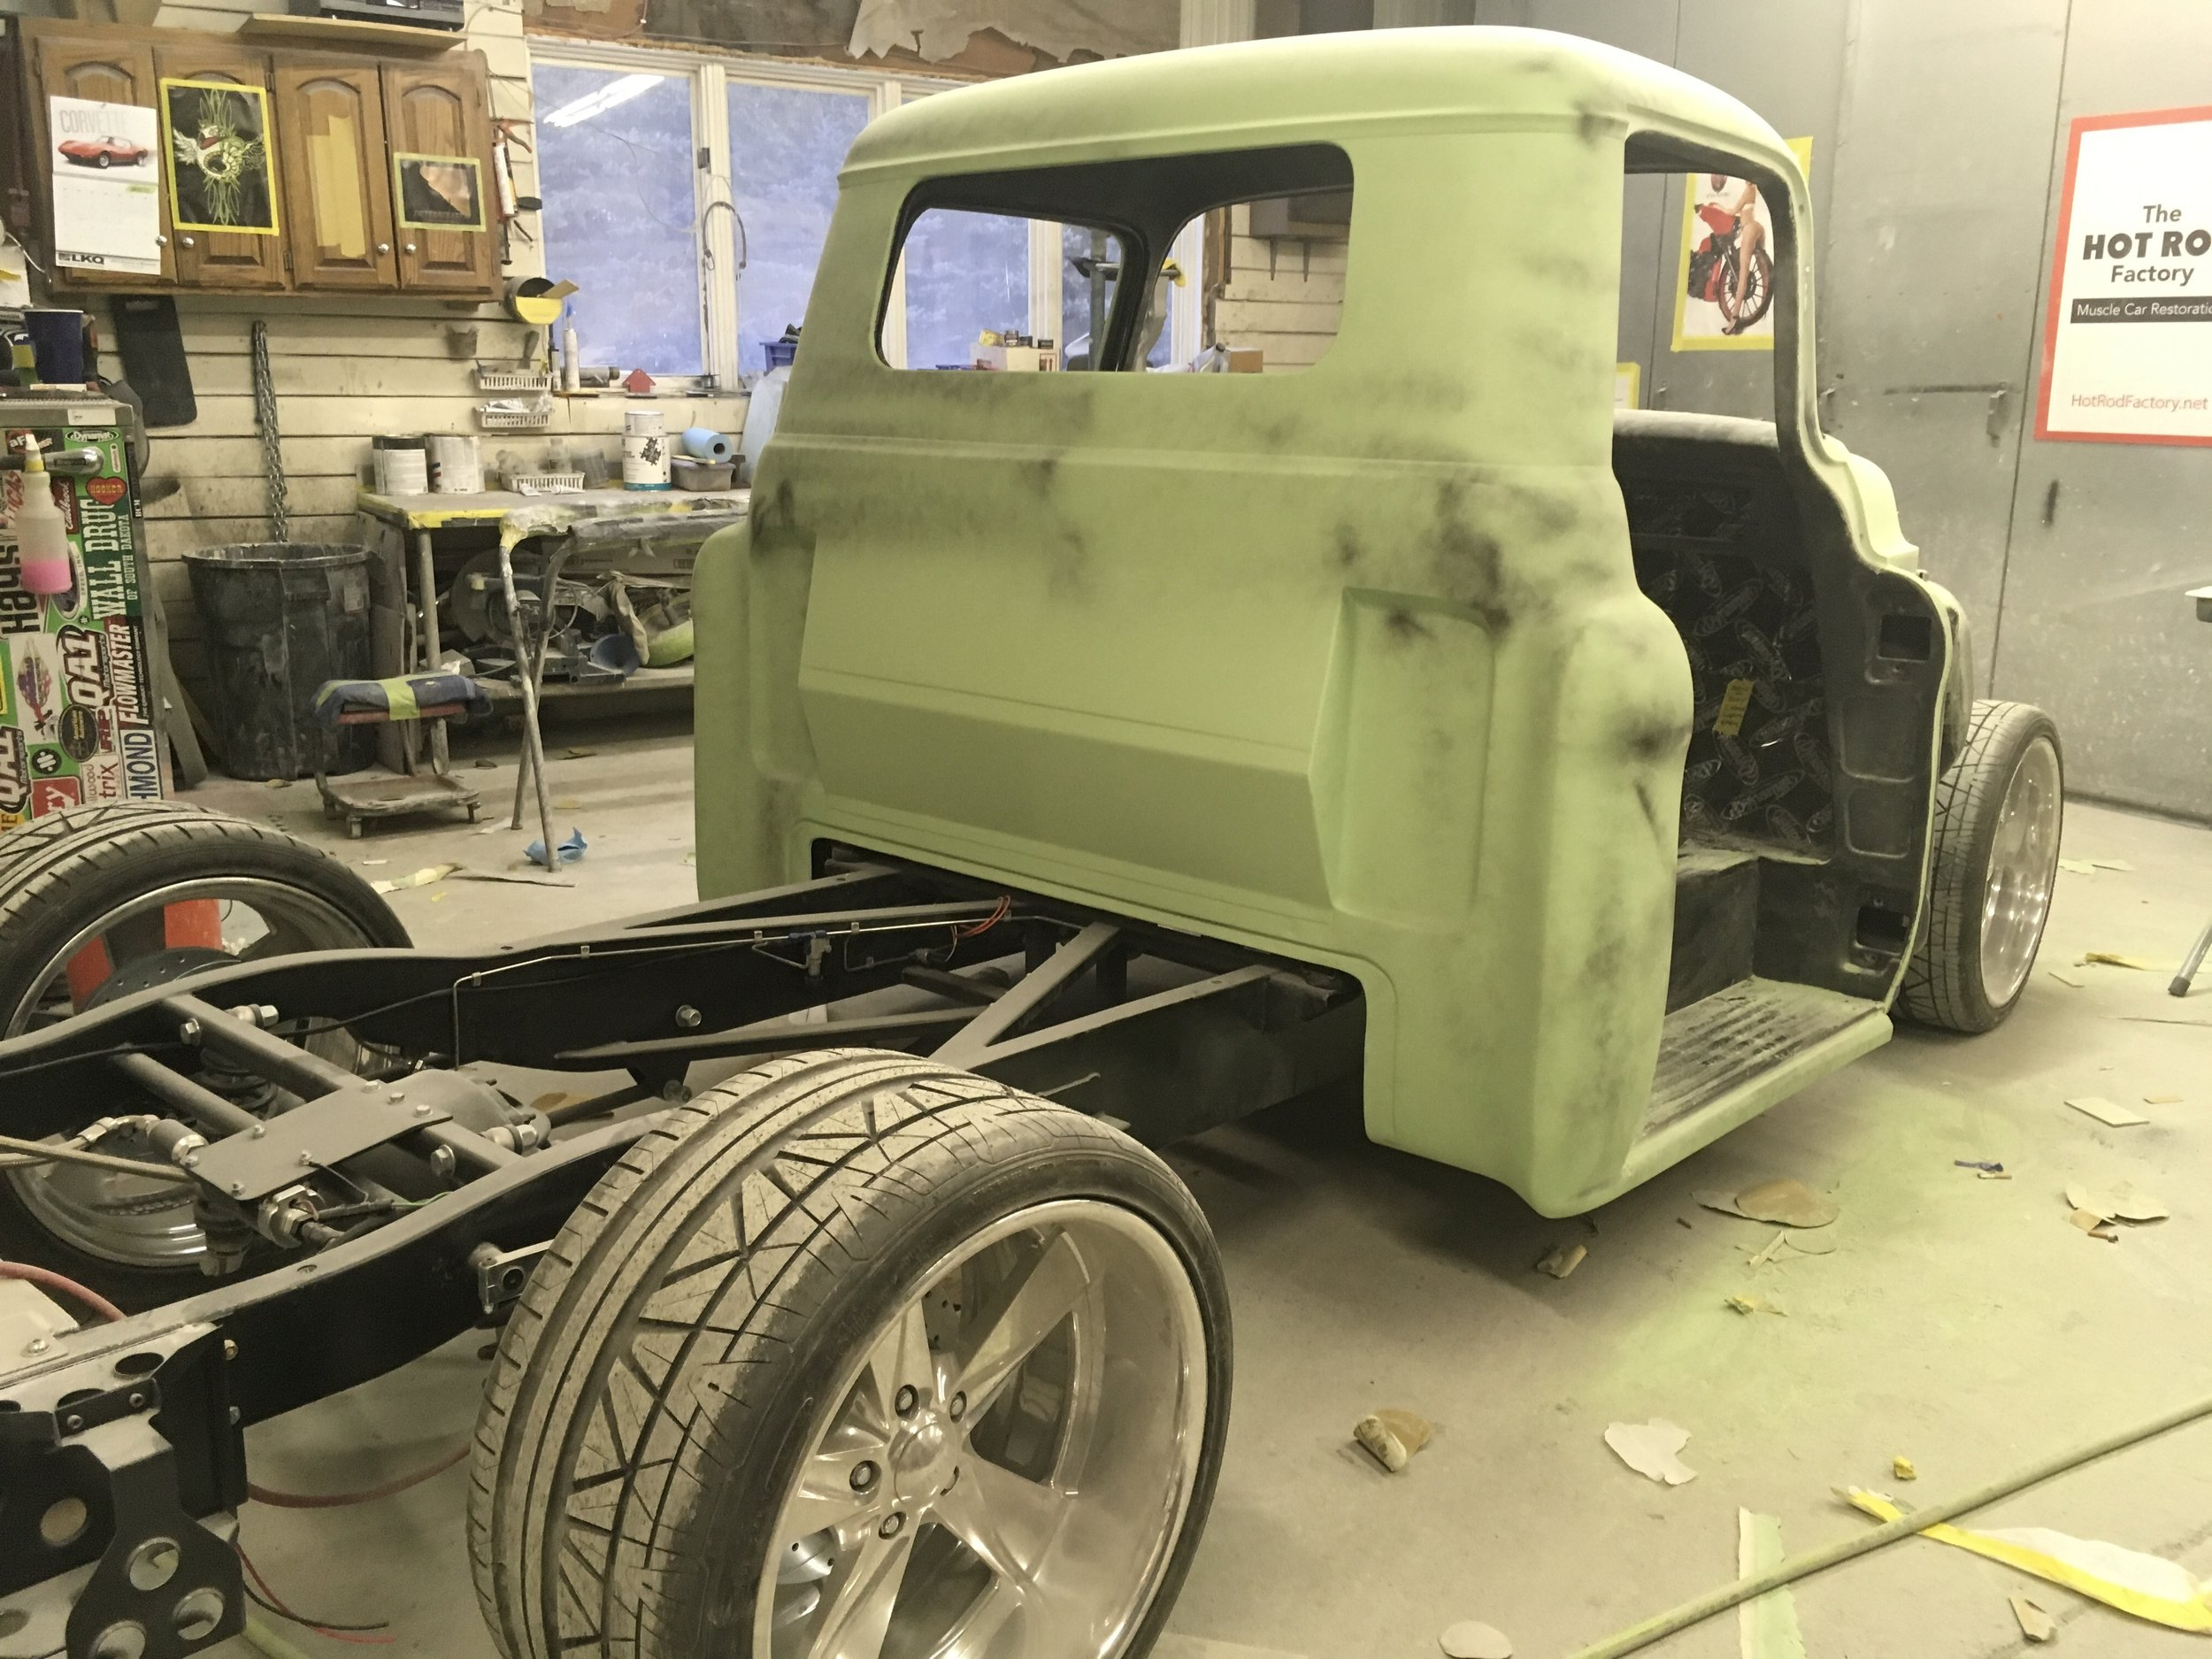 55 Chevy truck, getting ready for paint